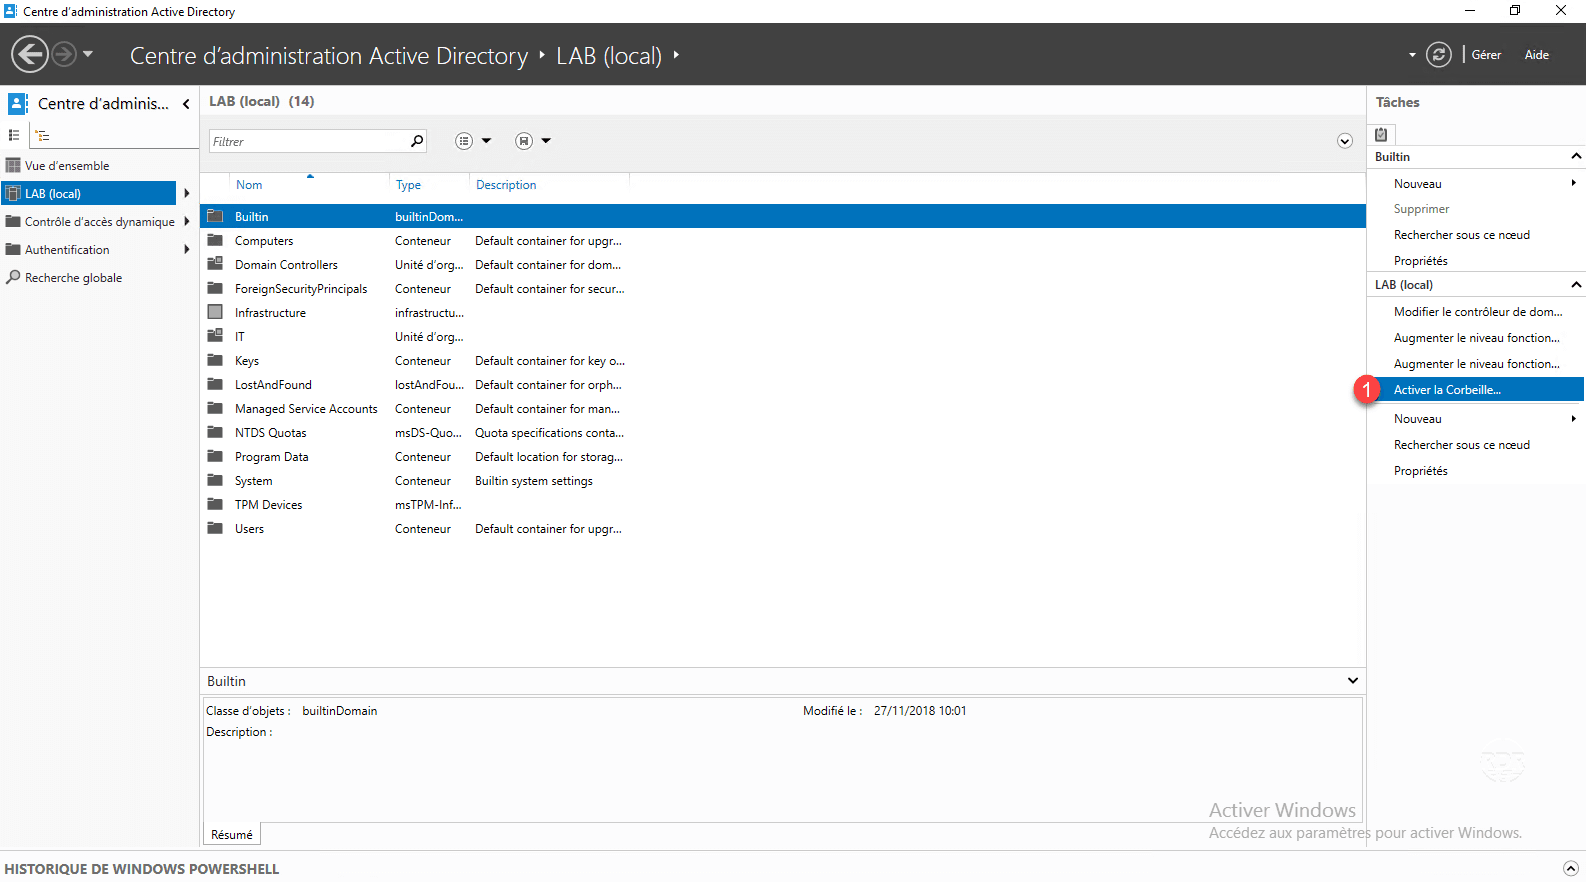 Enable Windows Active Directory Recycle Bin 2012/2016/2019 - RDR-IT